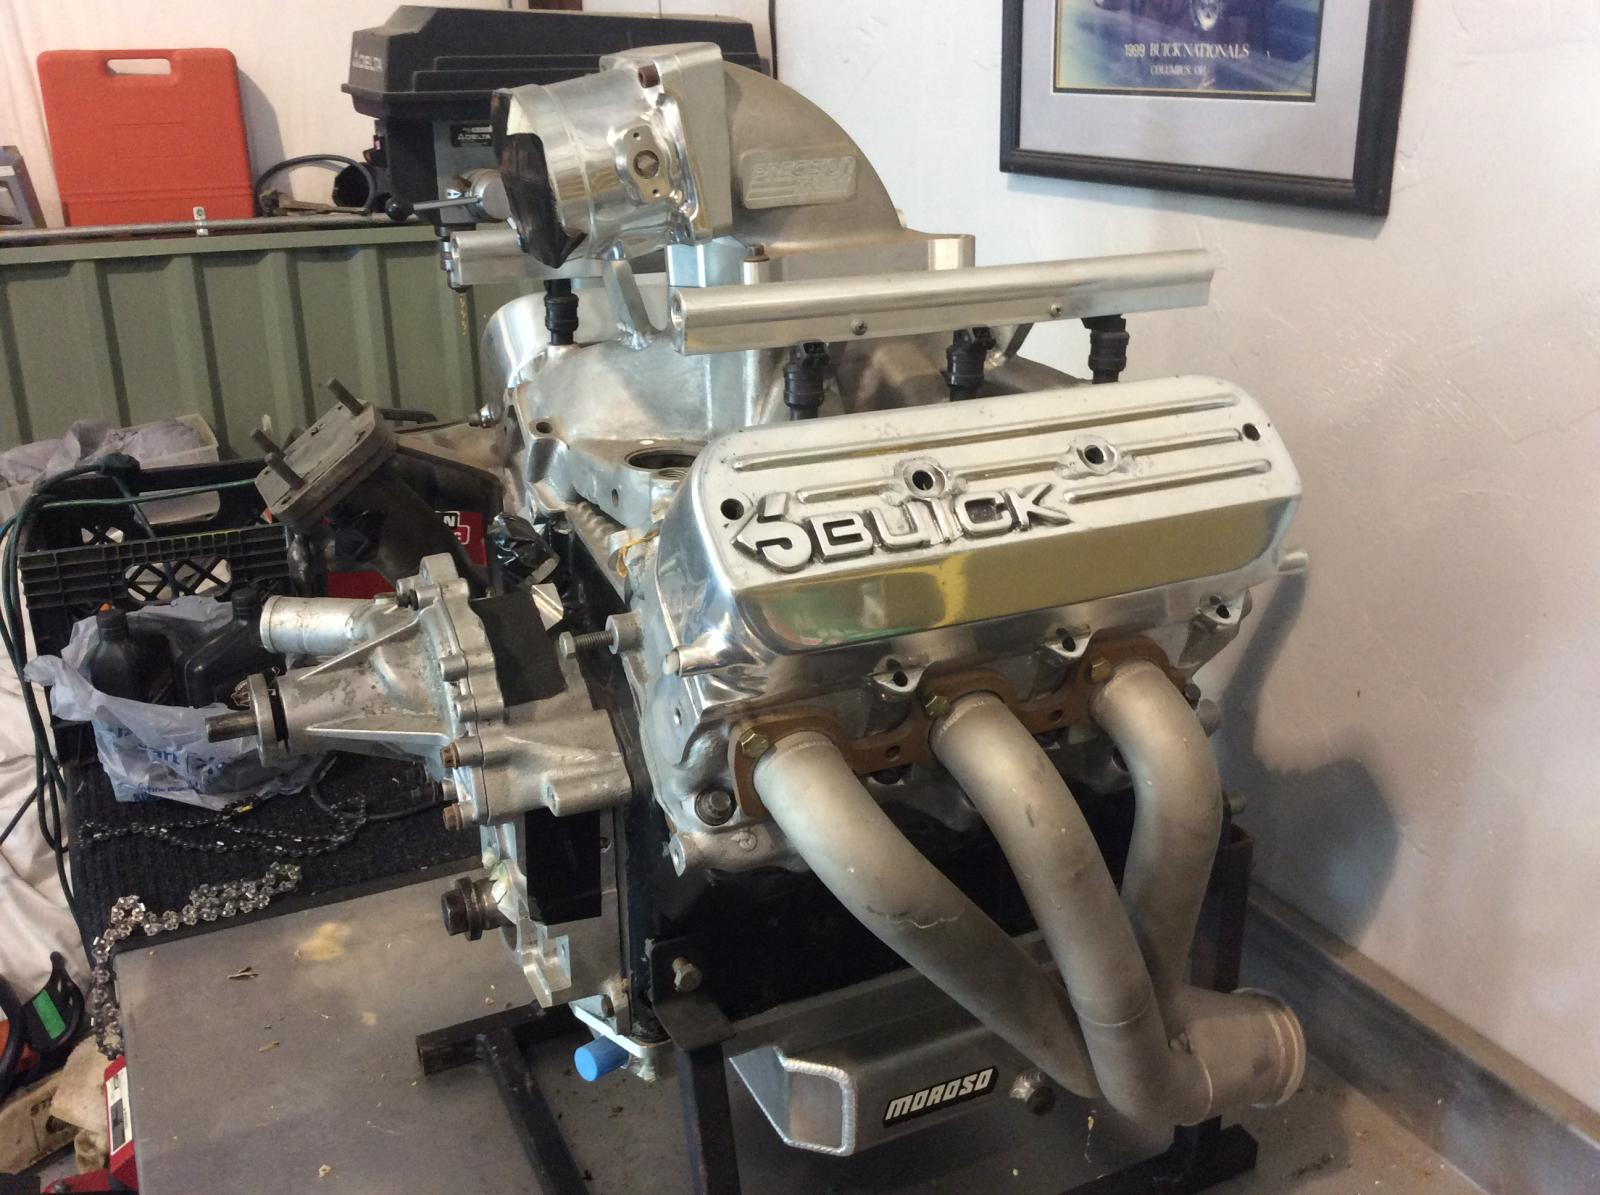 Stage 2 engine for sale in TX-ef66a85f-fb3b-4c0b-a5e3-3c9bd7c59364.jpg